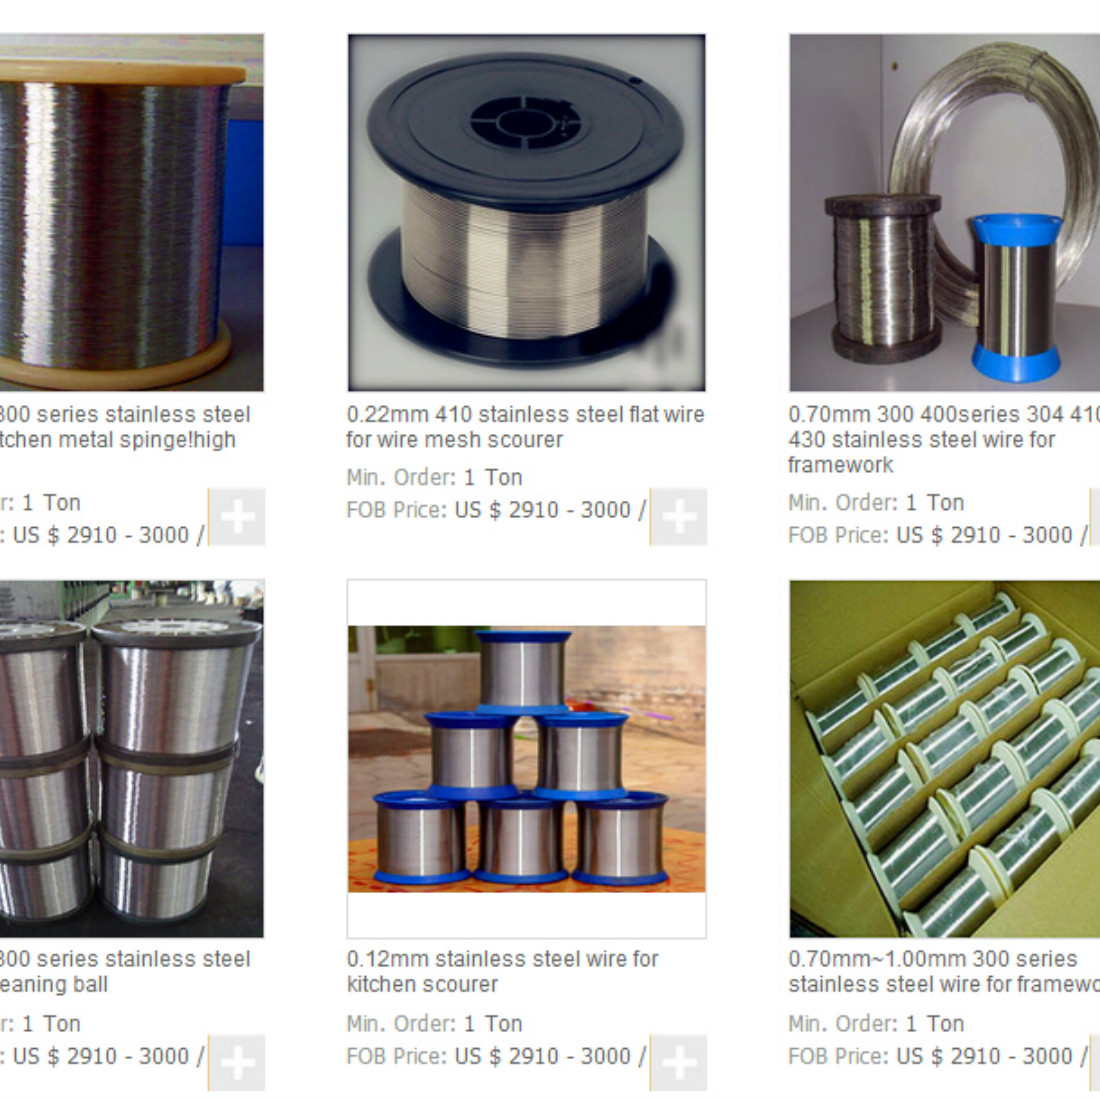 stainless steel wire for kitchen scrubber